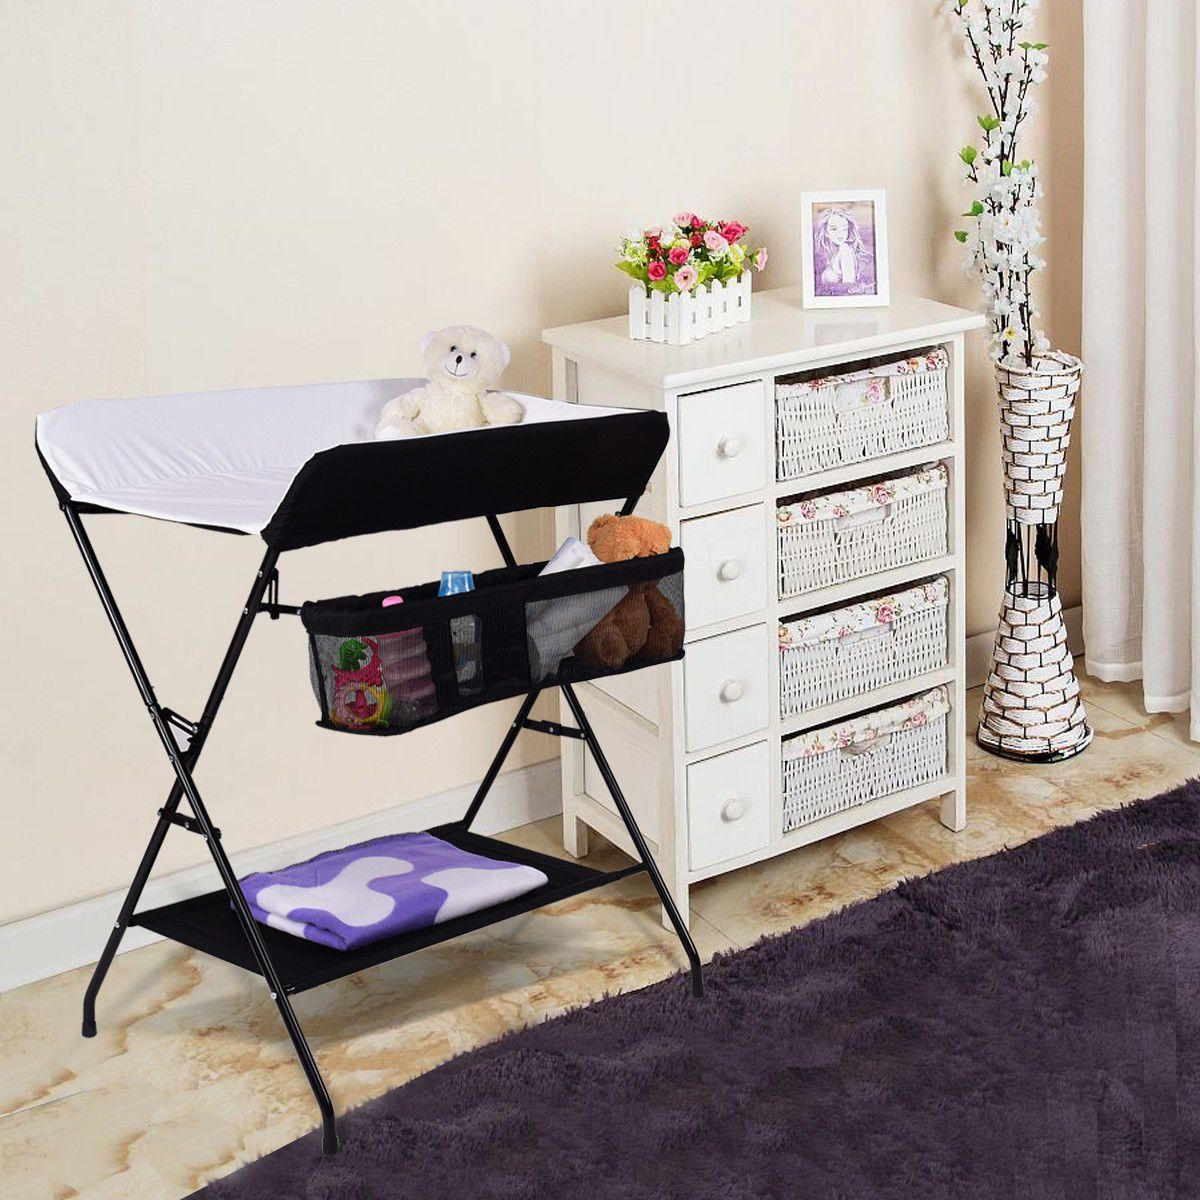 10 Best Portable Changing Tables Omy9 Reviews Diaper Changing Table Baby Changing Table Nursery Changing Table [ 1200 x 1200 Pixel ]